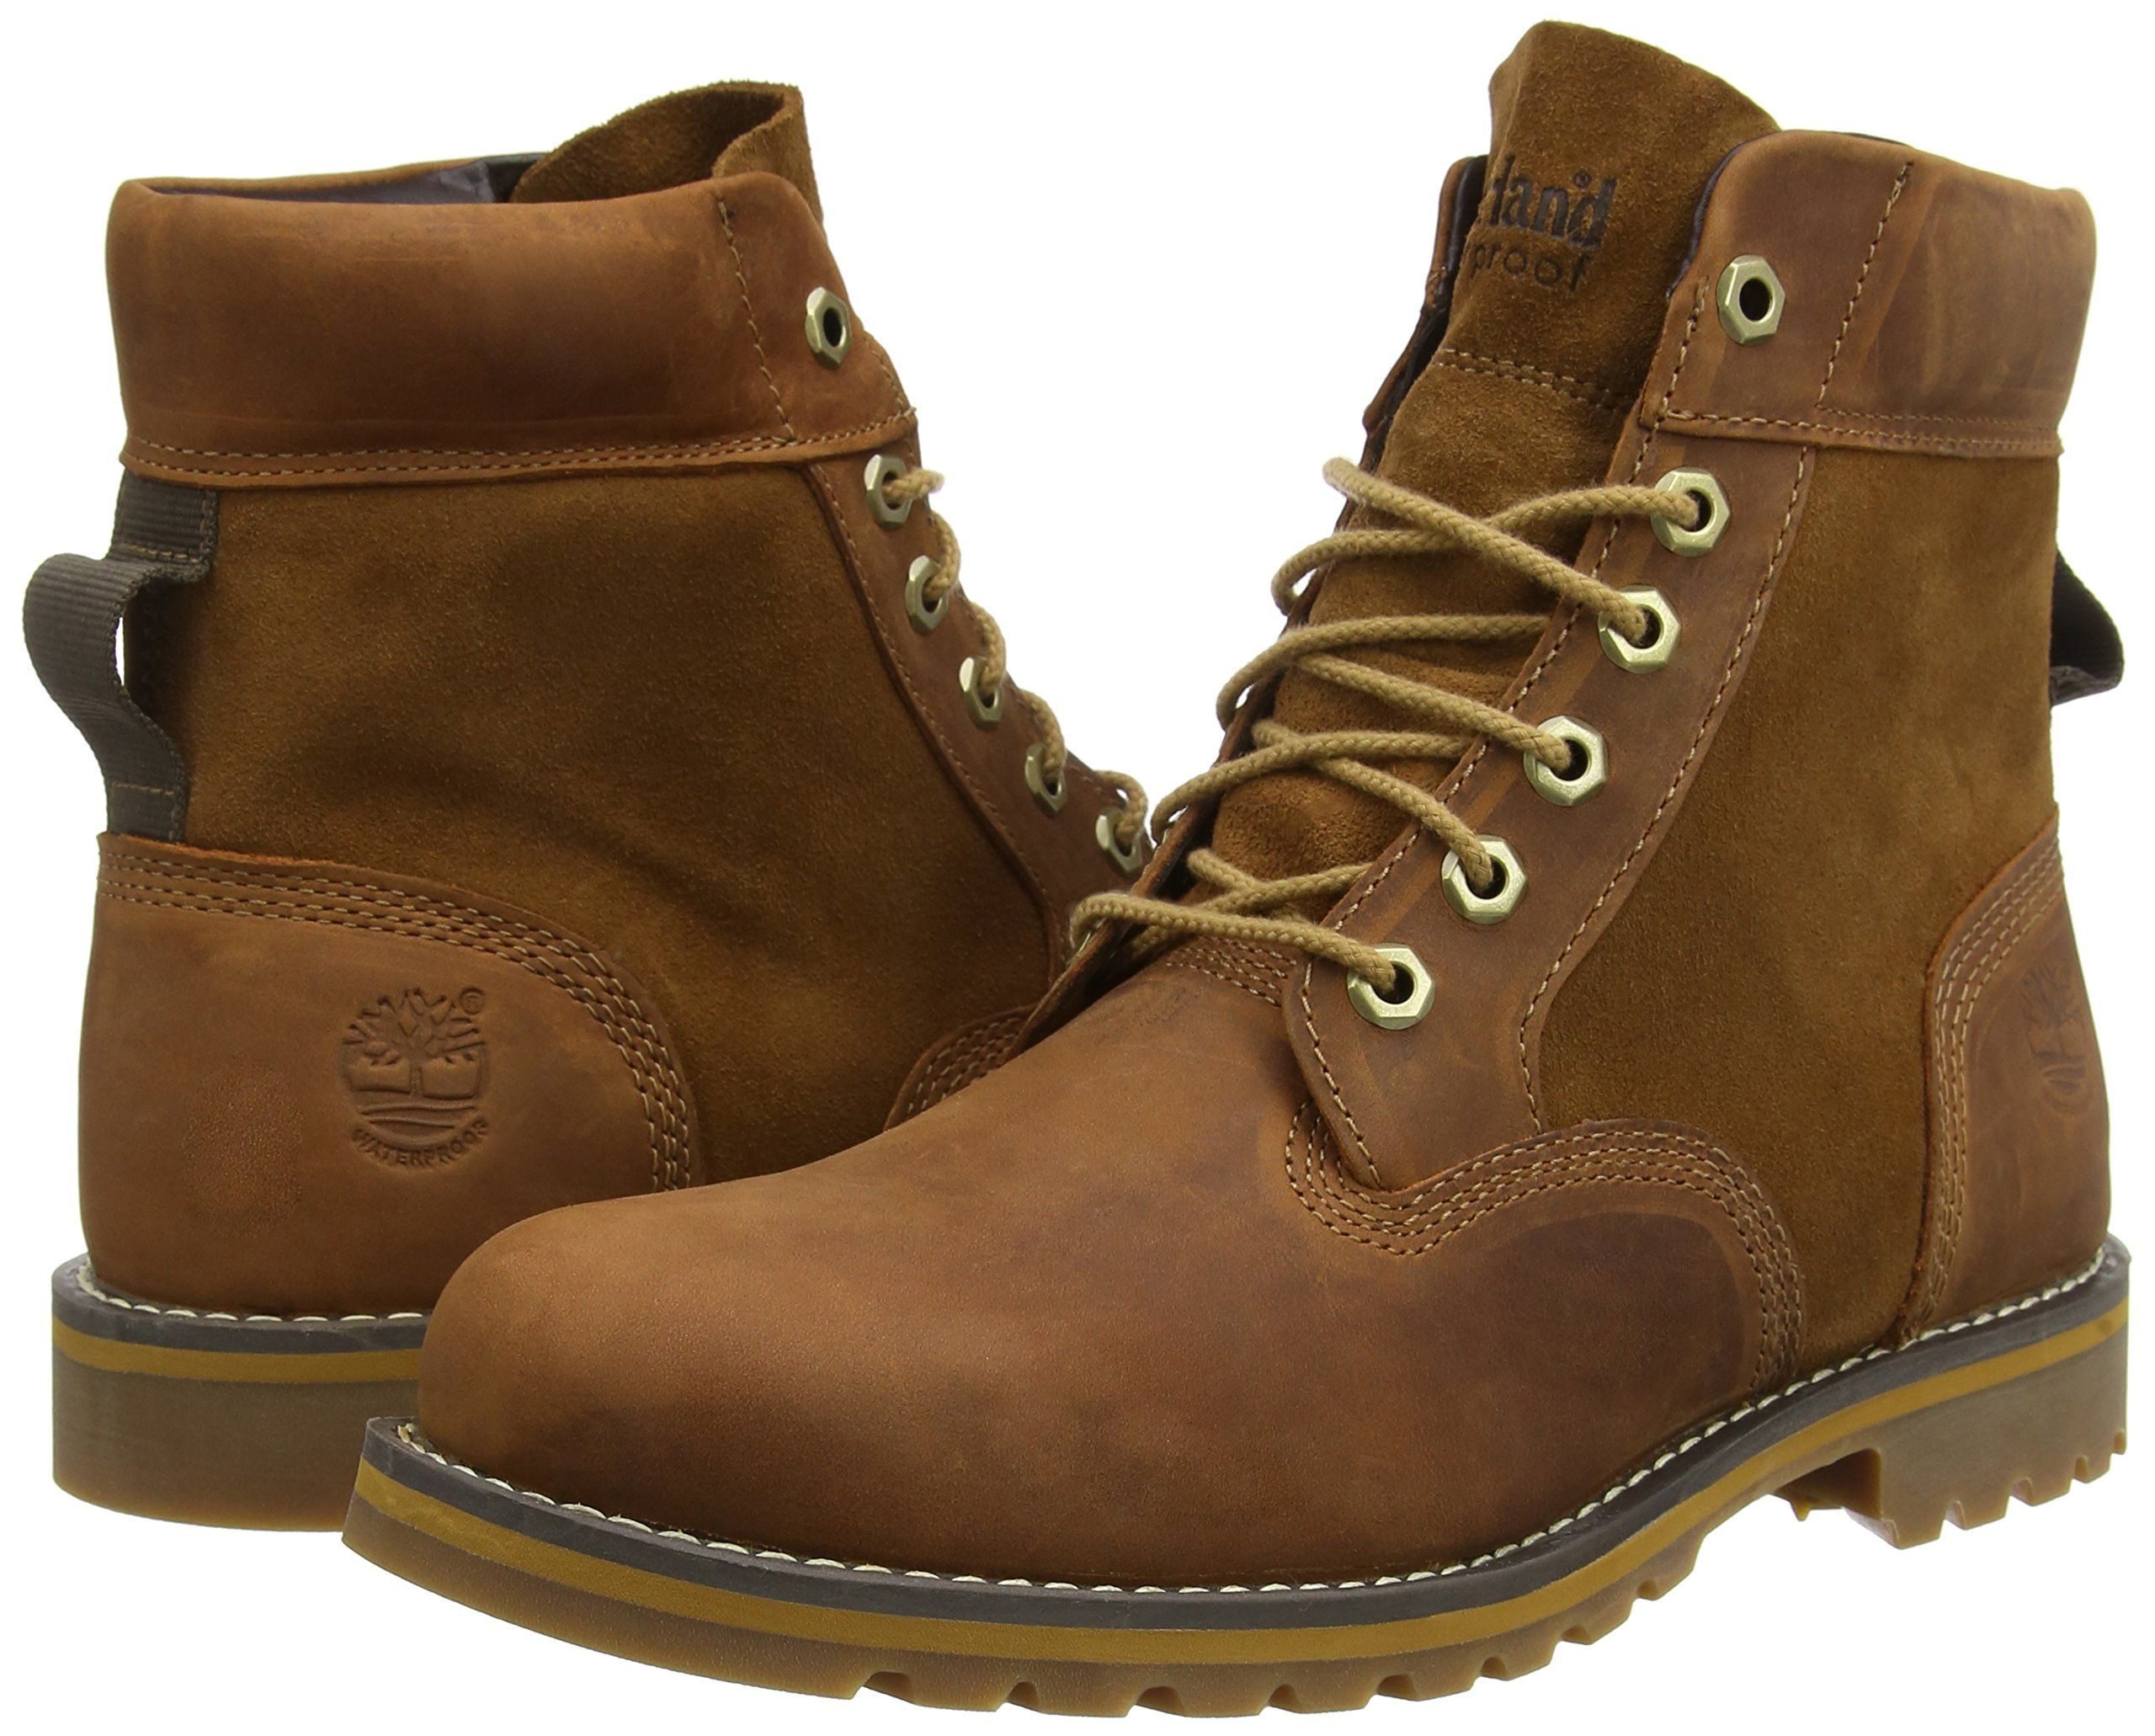 b4b9fdf8c36 Timberland Larchmont Ftm_larchmont 6in Wp Boot, Men's Ankle Boots ...